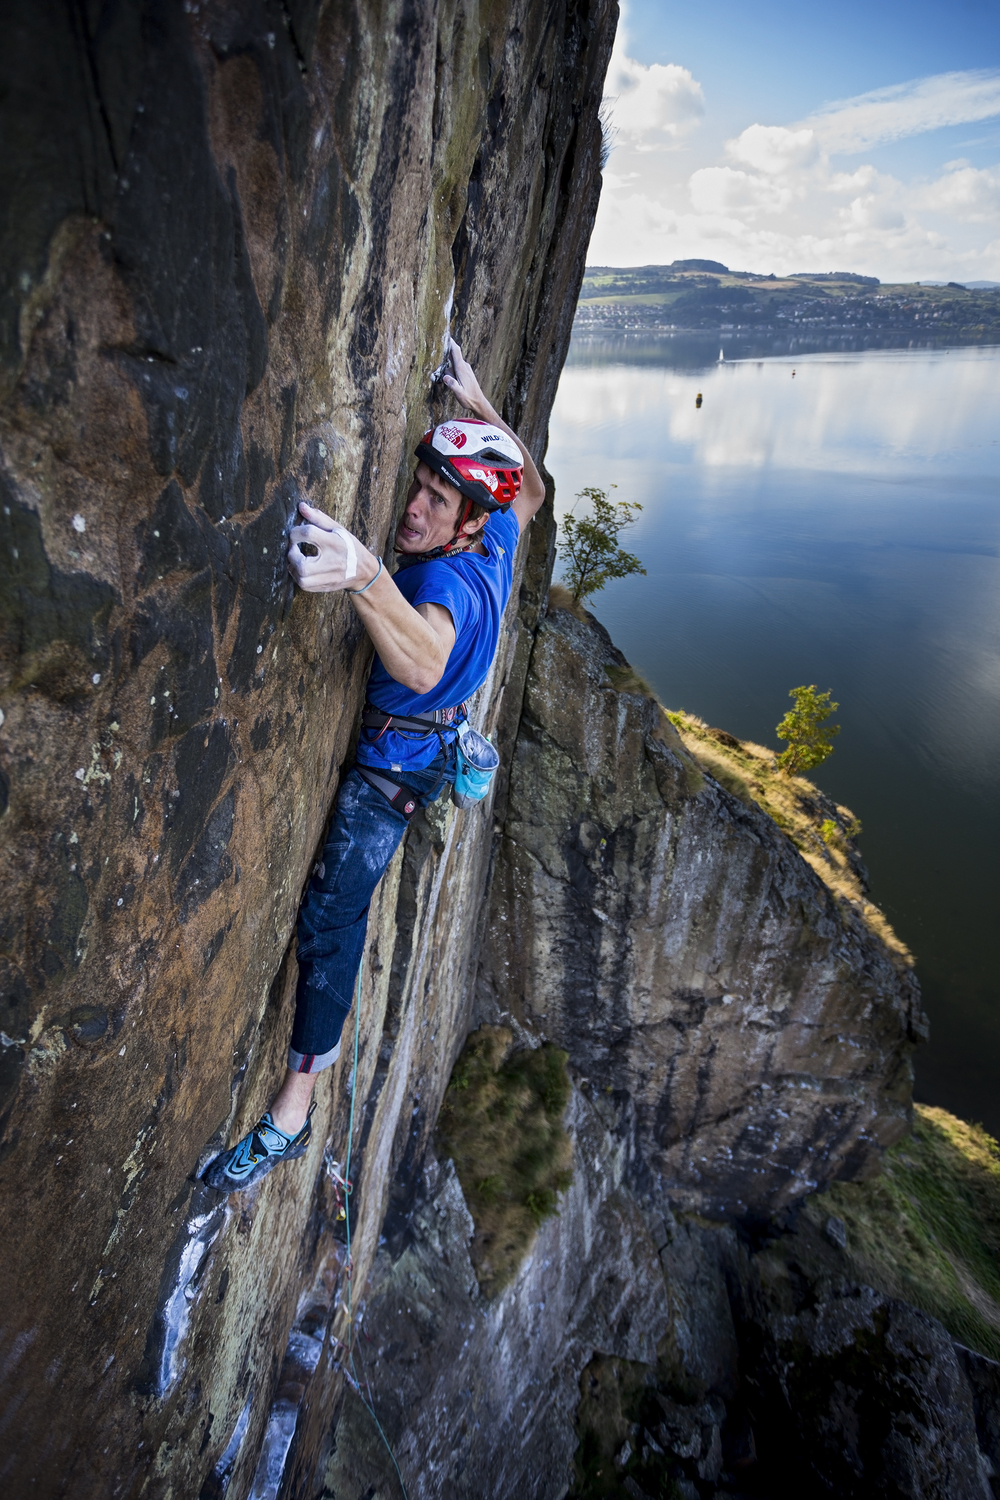 James Pearson leading 'Rhapsody' E11 at Dumbarton Rock.